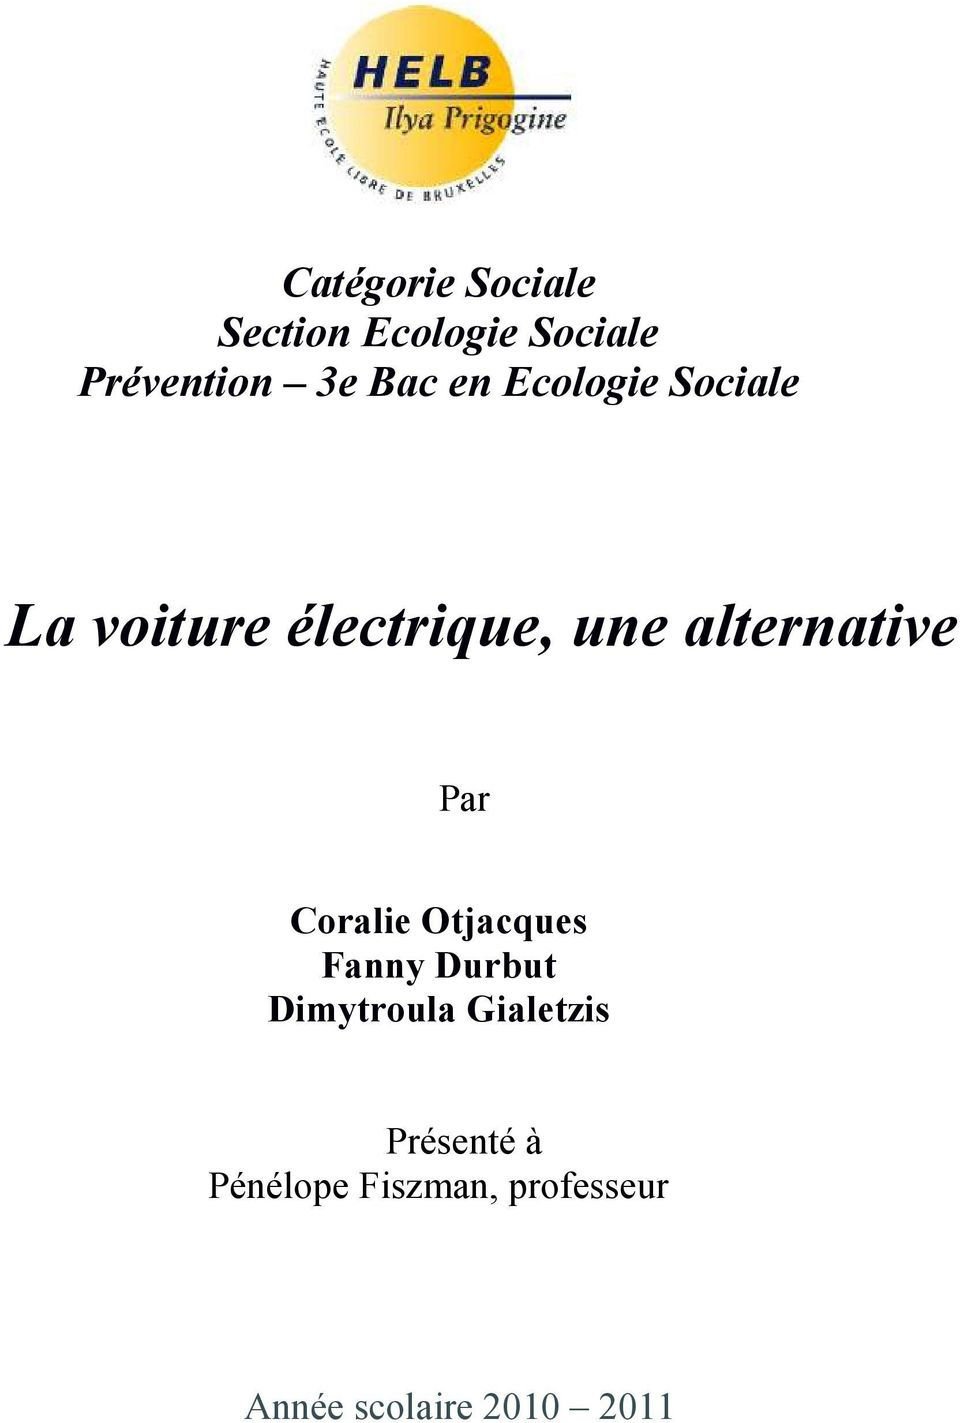 alternative Par Coralie Otjacques Fanny Durbut Dimytroula